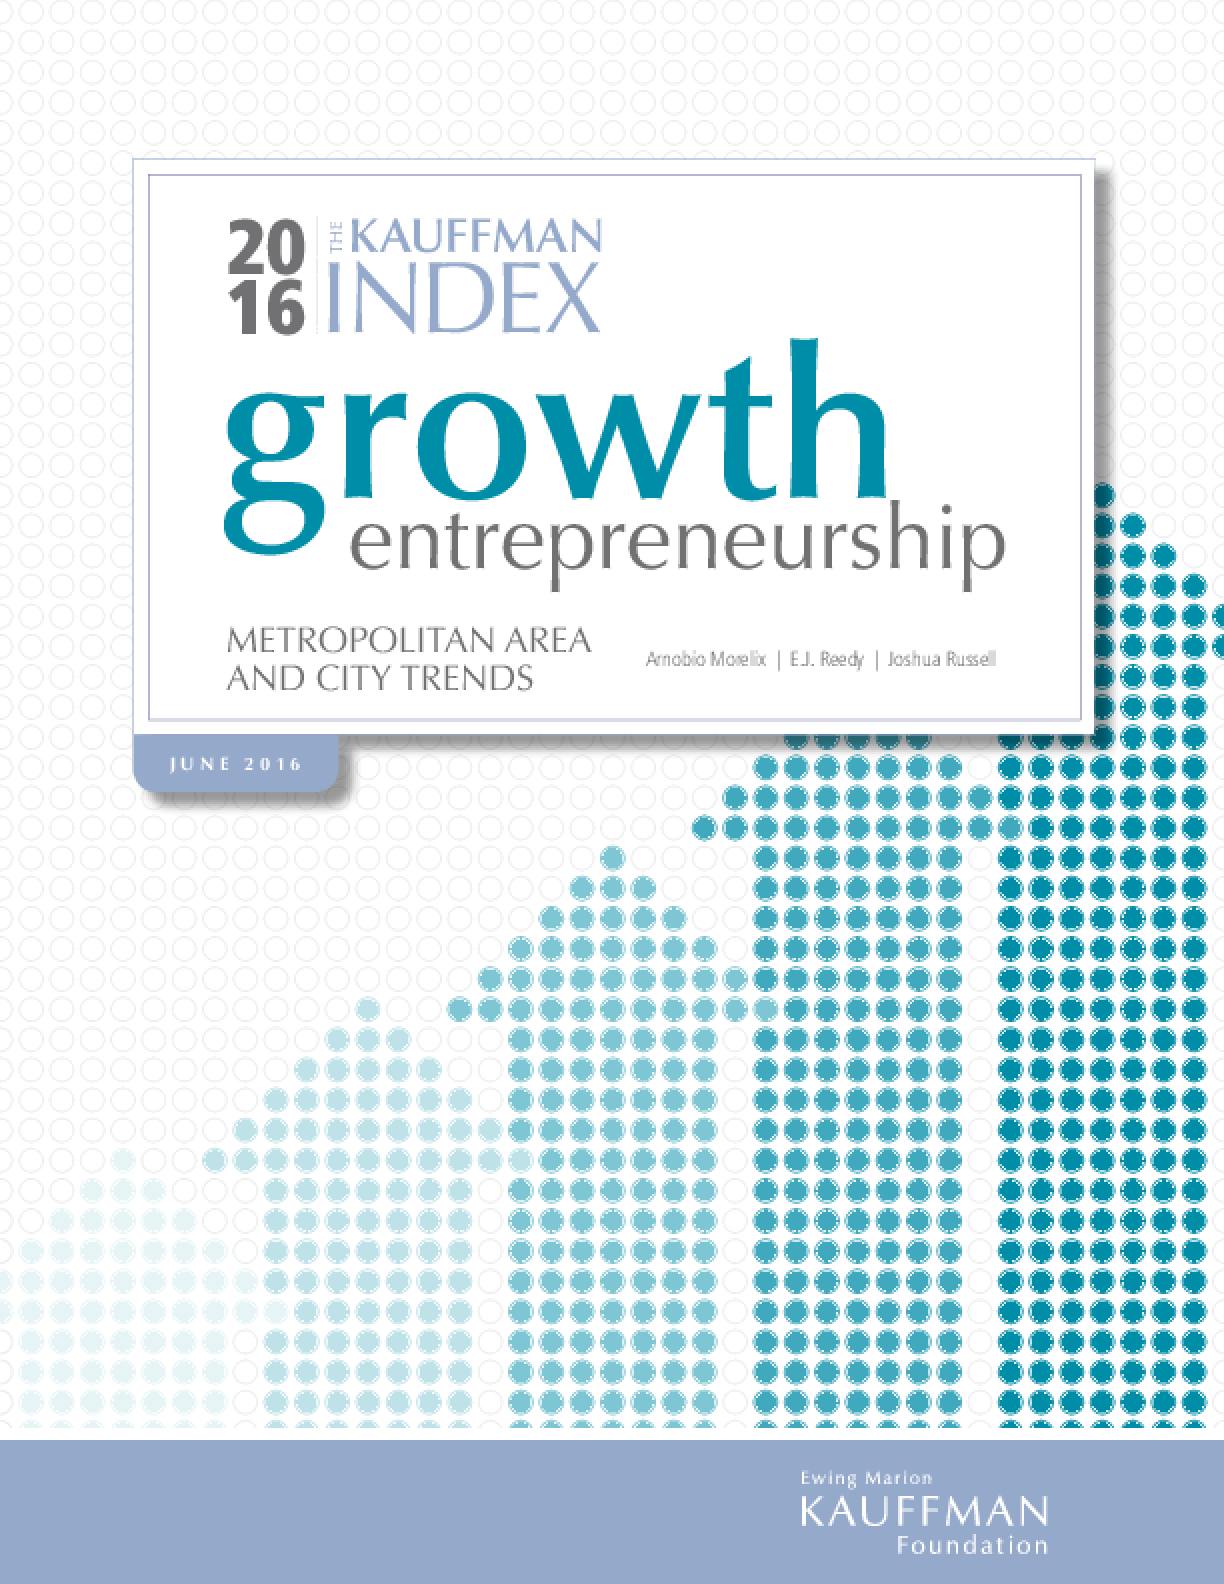 The Kauffman Index 2016: Growth Entrepreneurship - Metropolitan Area and City Trends